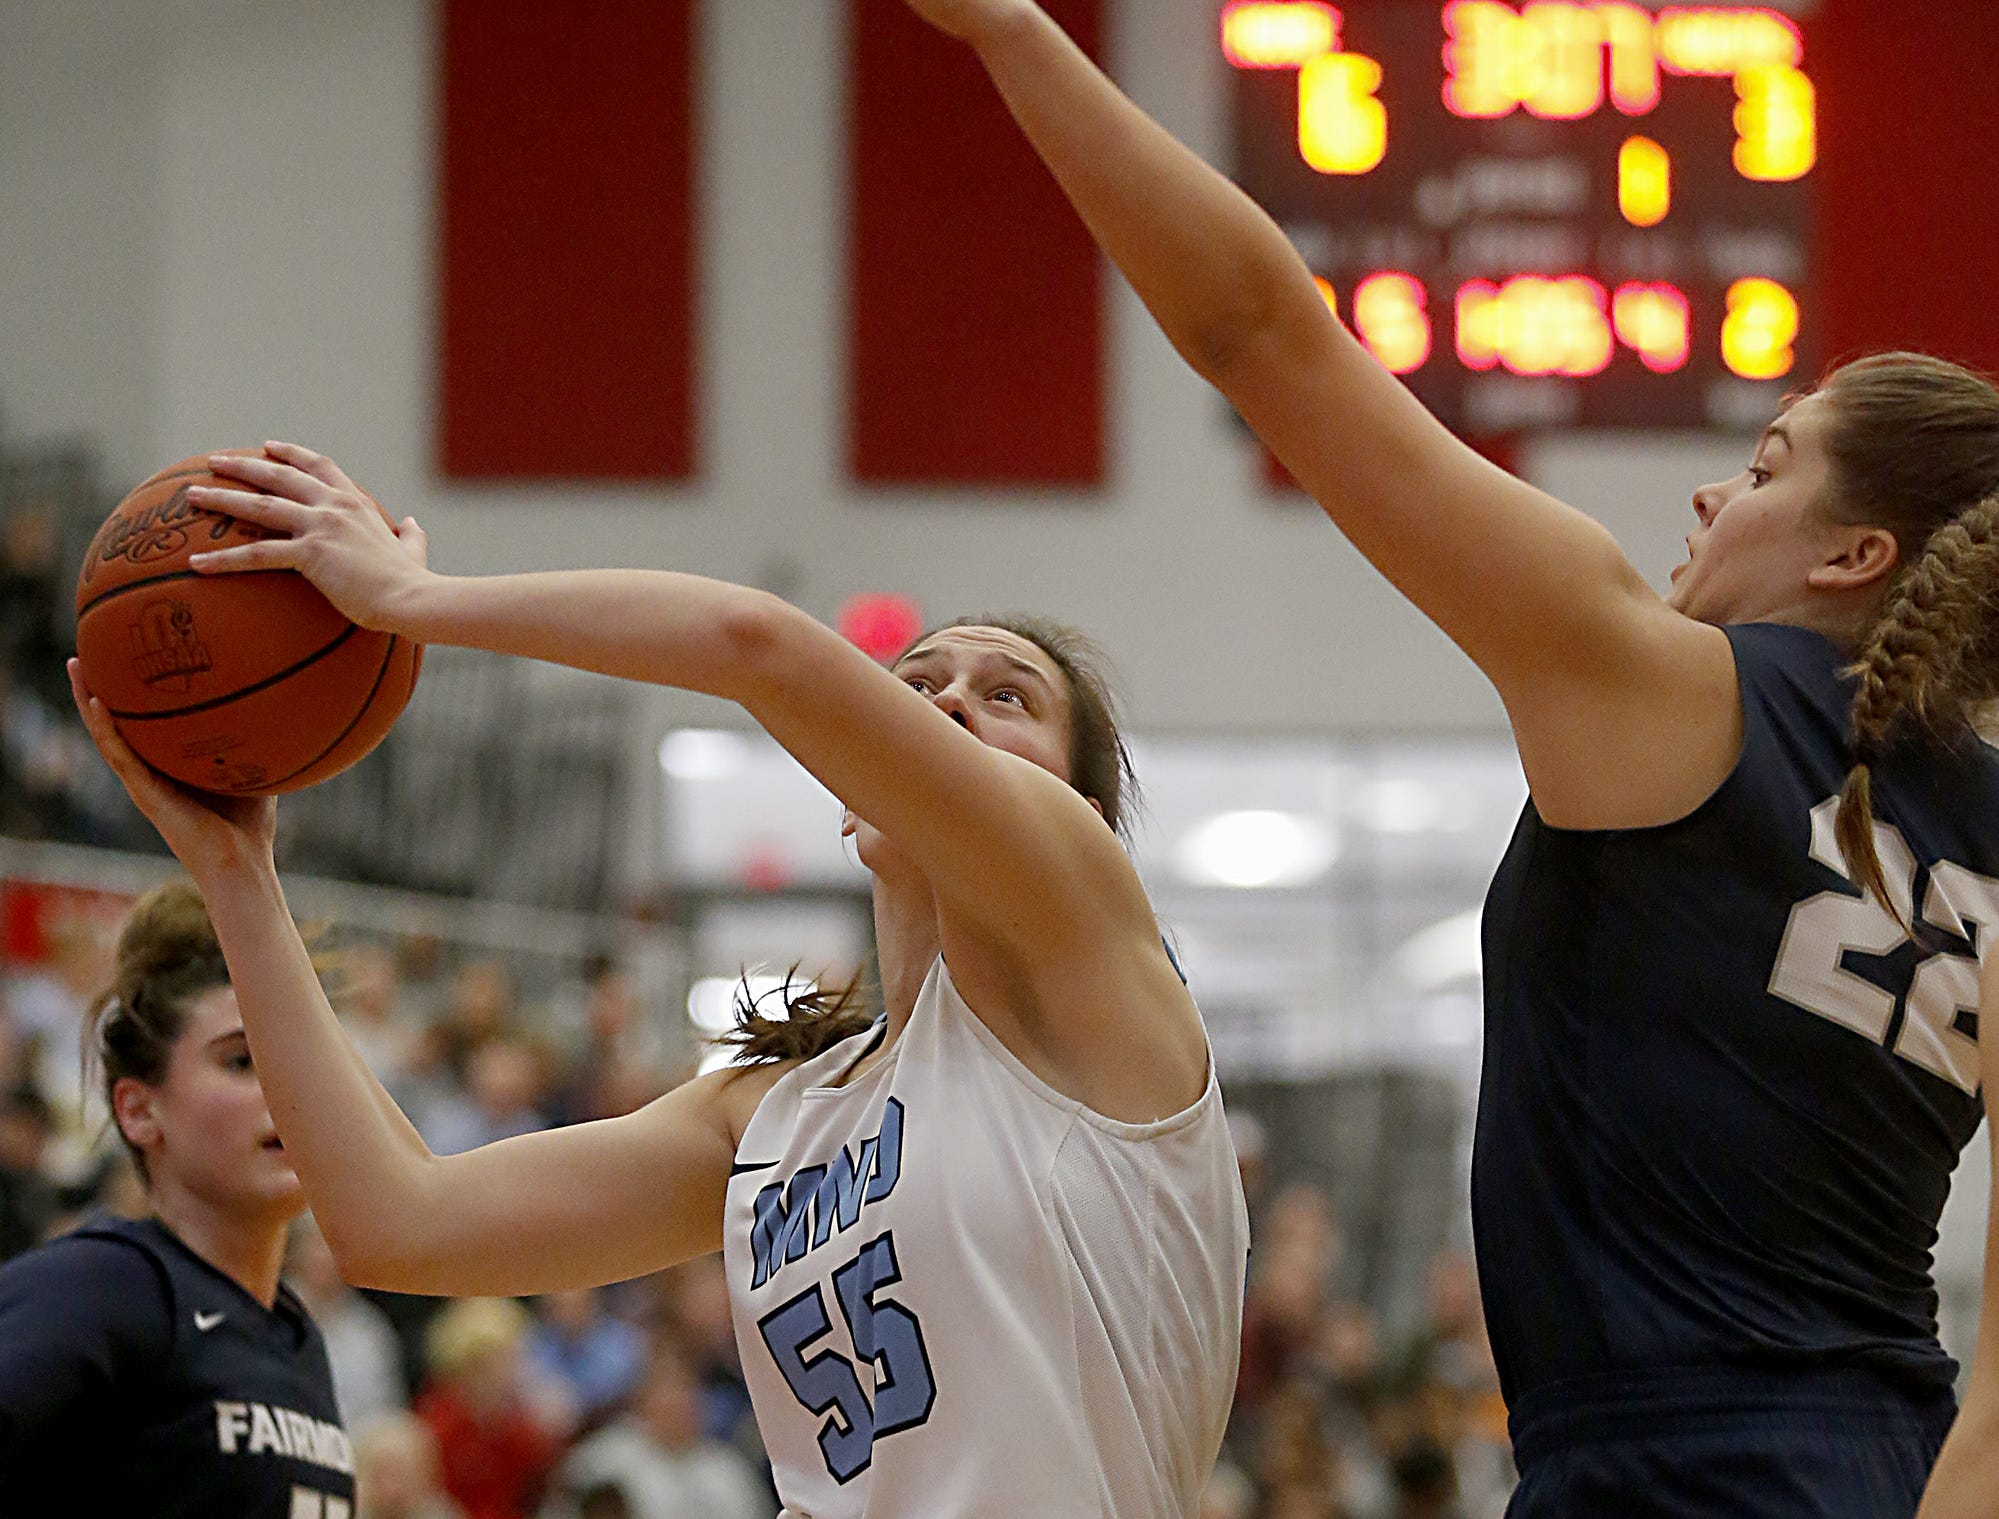 Mt. Notre Dame's Julia Hoefling scores against Kettering Fairmont's Madison Bartley during the Southwest District Girls Division I finals at Princeton High School in Cincinnati Saturday, March 2, 2019.